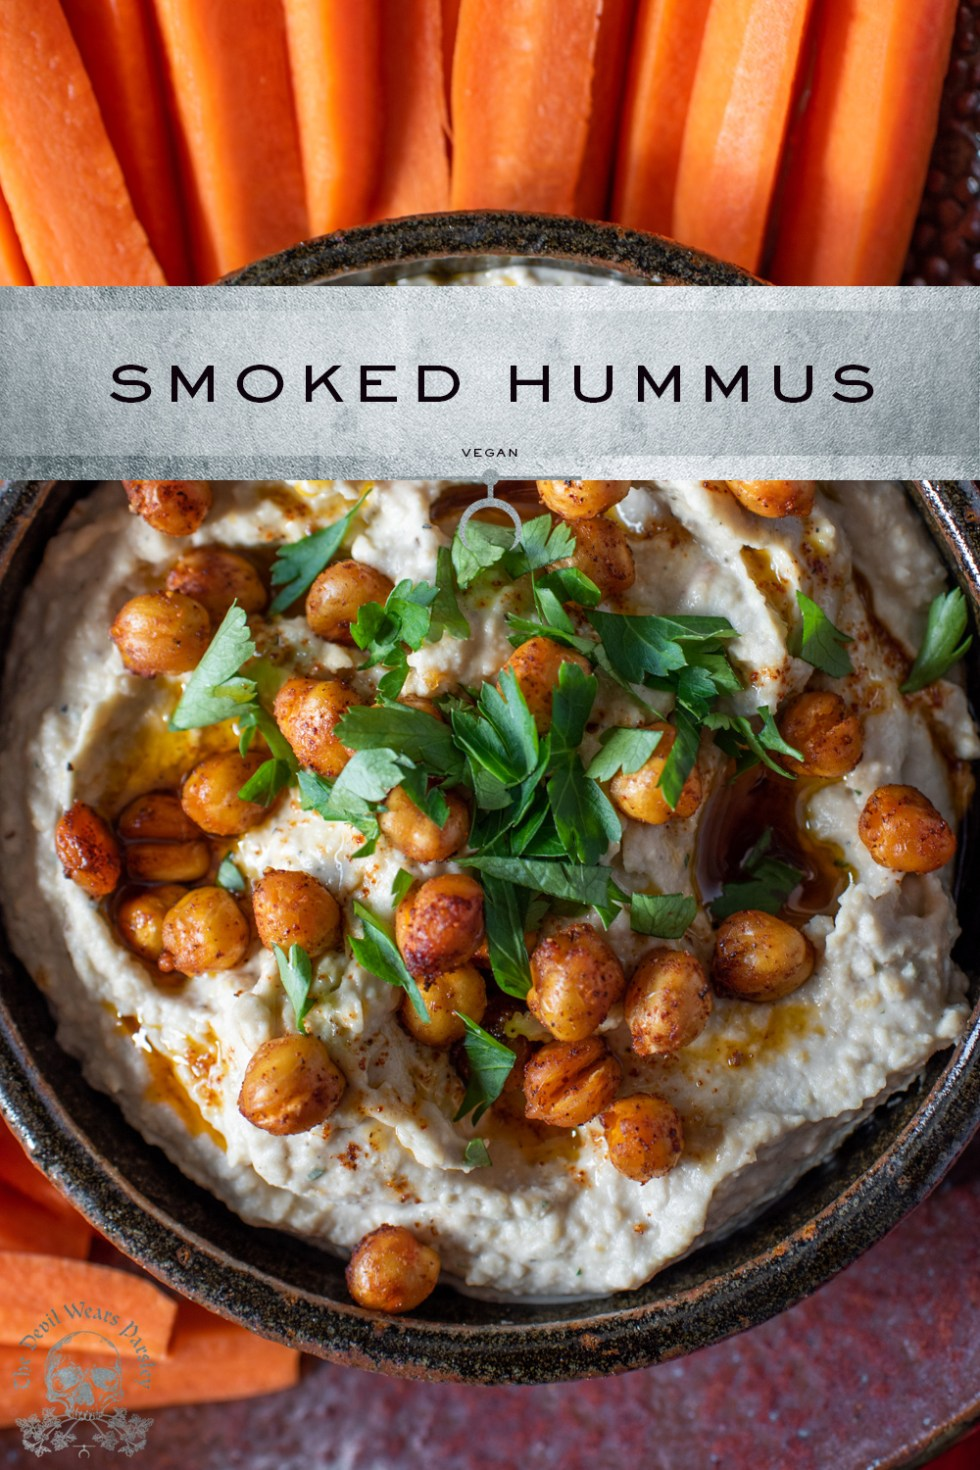 A simple dish like smoked hummus can be quickly elevated with extra flavor from bourbon smoked spices, and texture from roasted chickpeas.